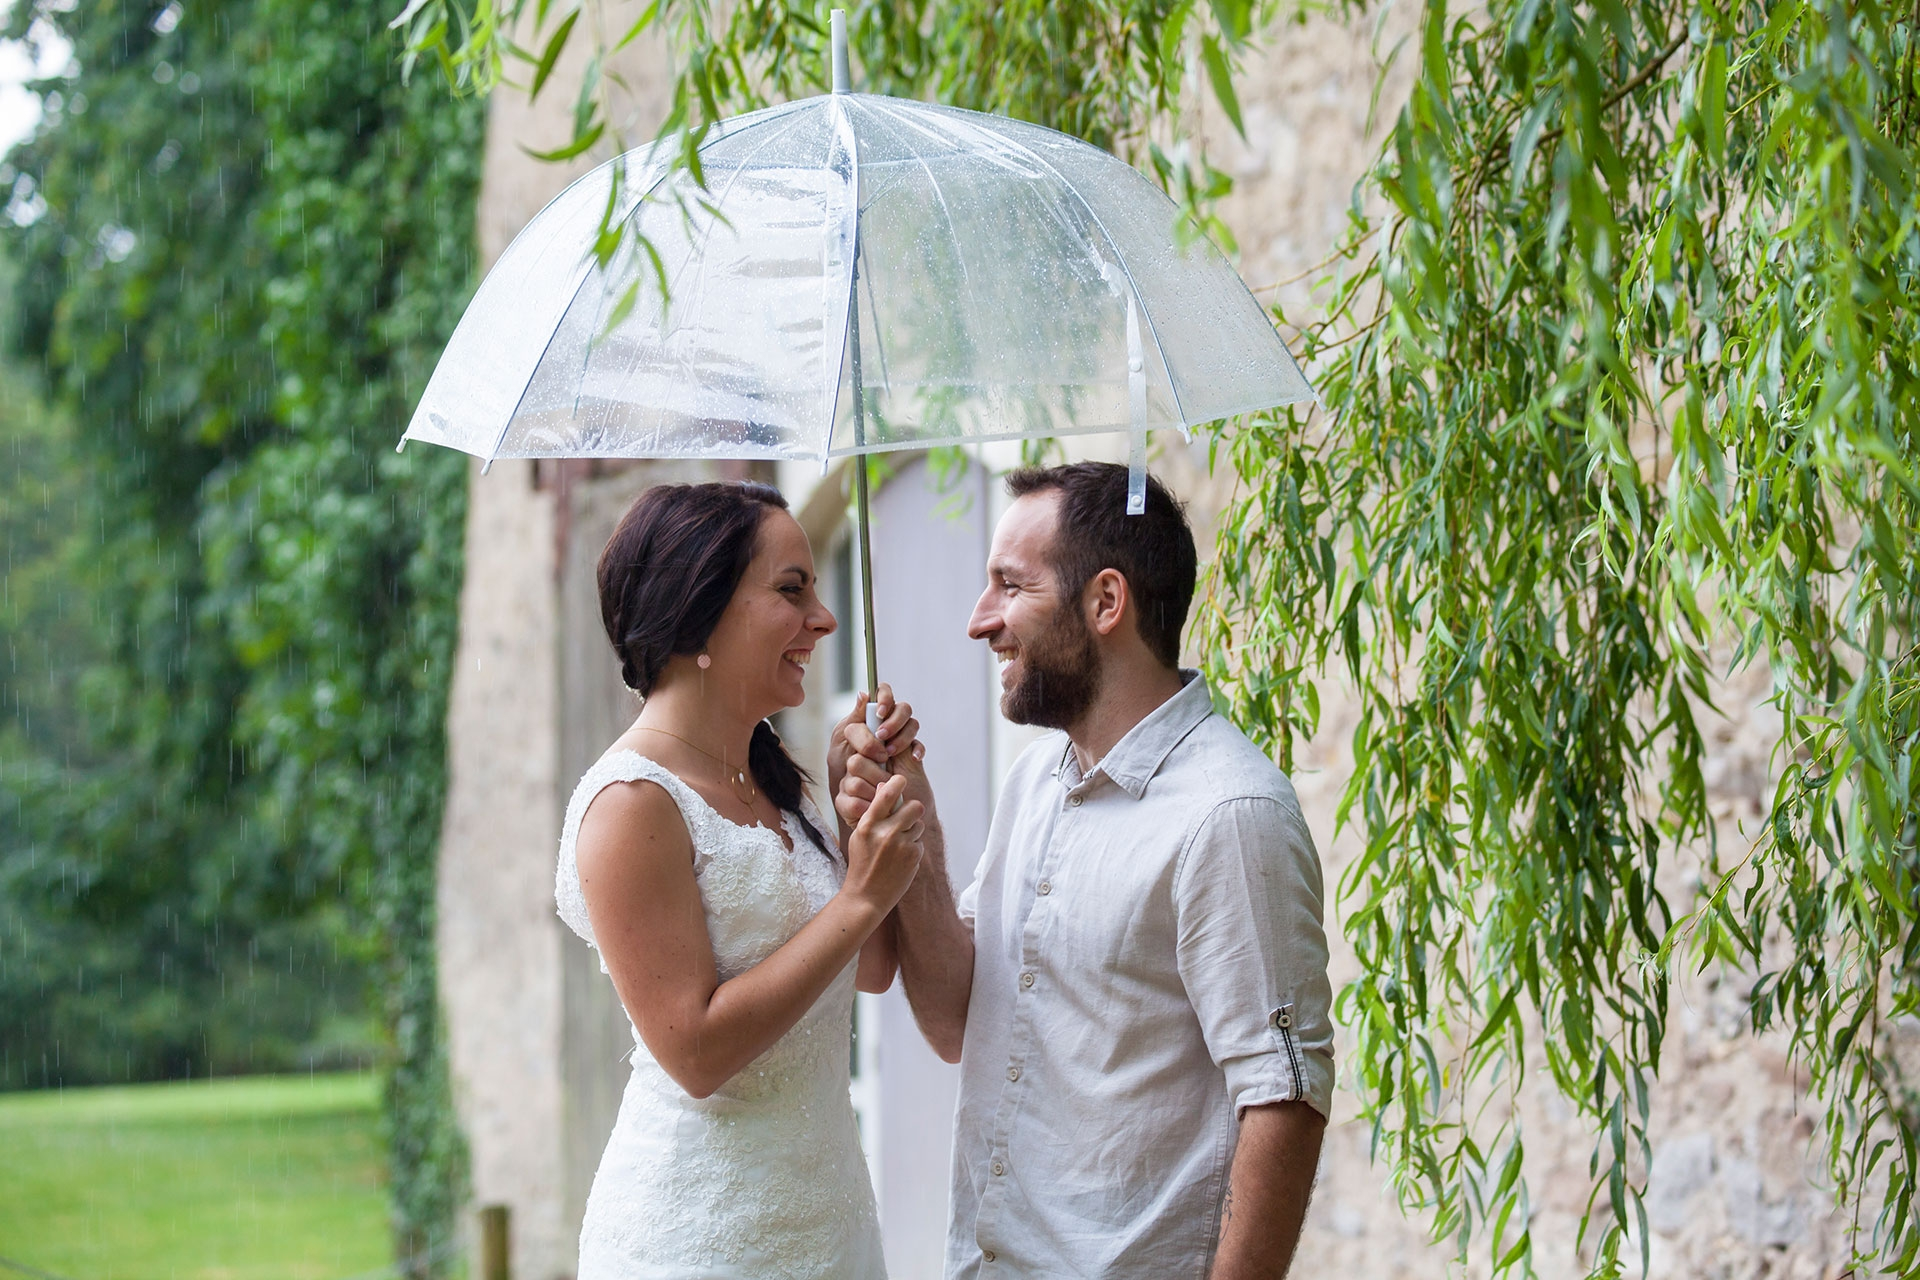 particuliers-evenements-mariage-oui-carla&jeremy-27